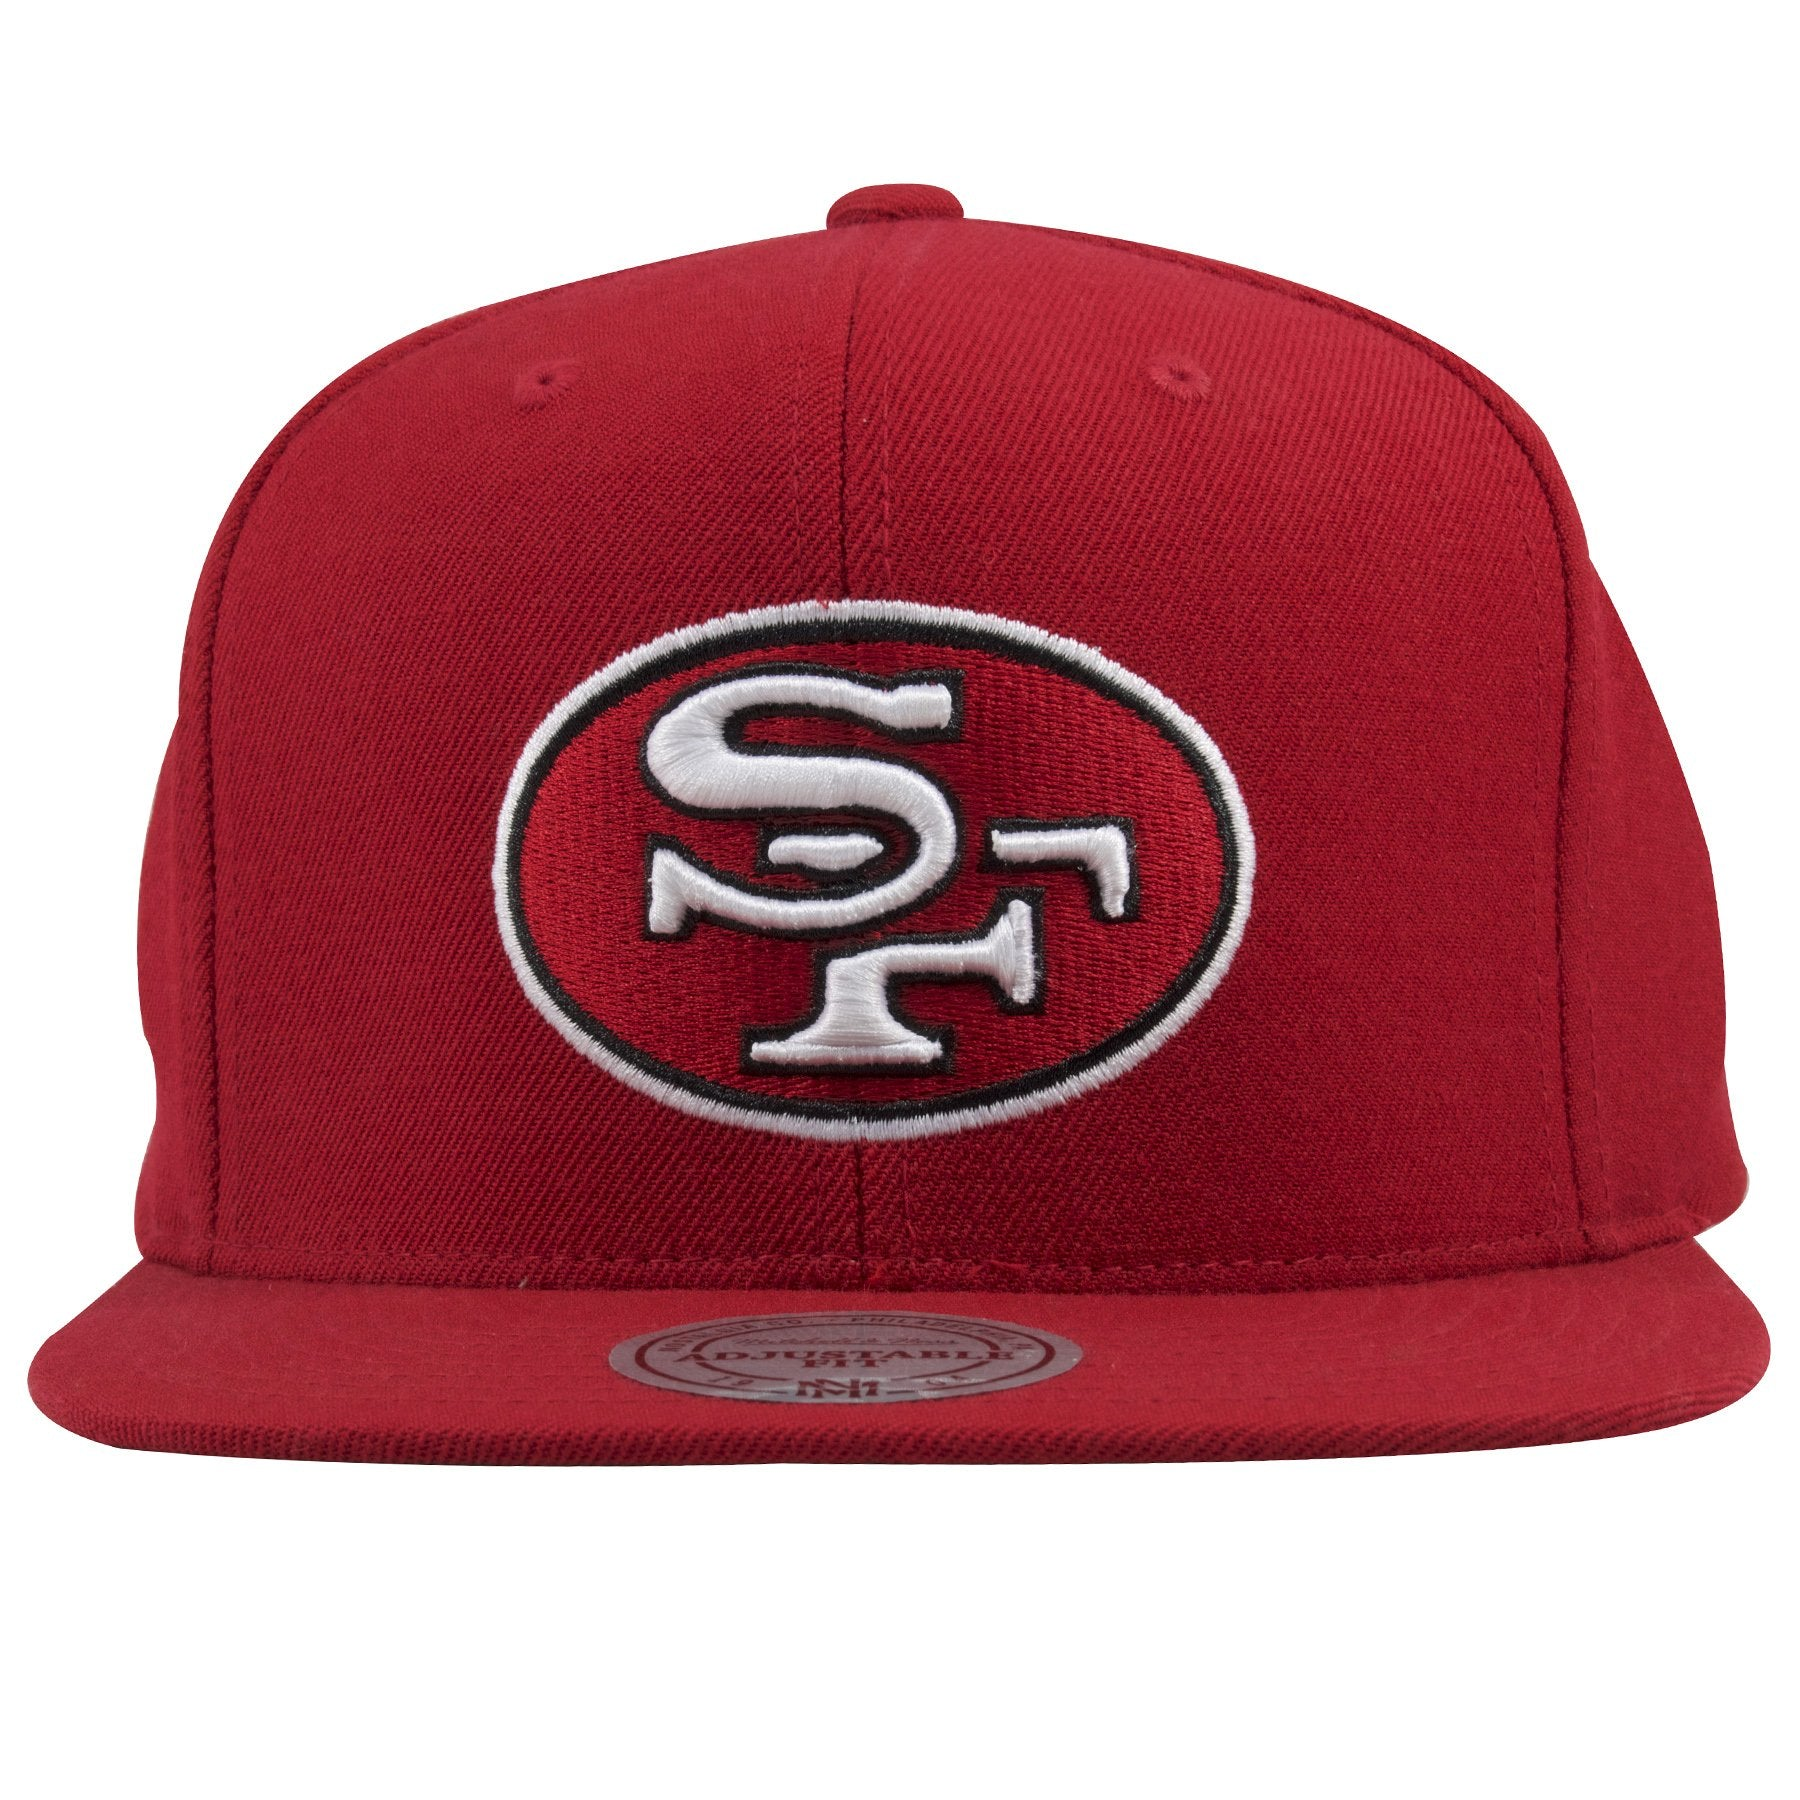 de779a907 On the front of this Red San Francisco snapback hat shows the vintage logo  of the